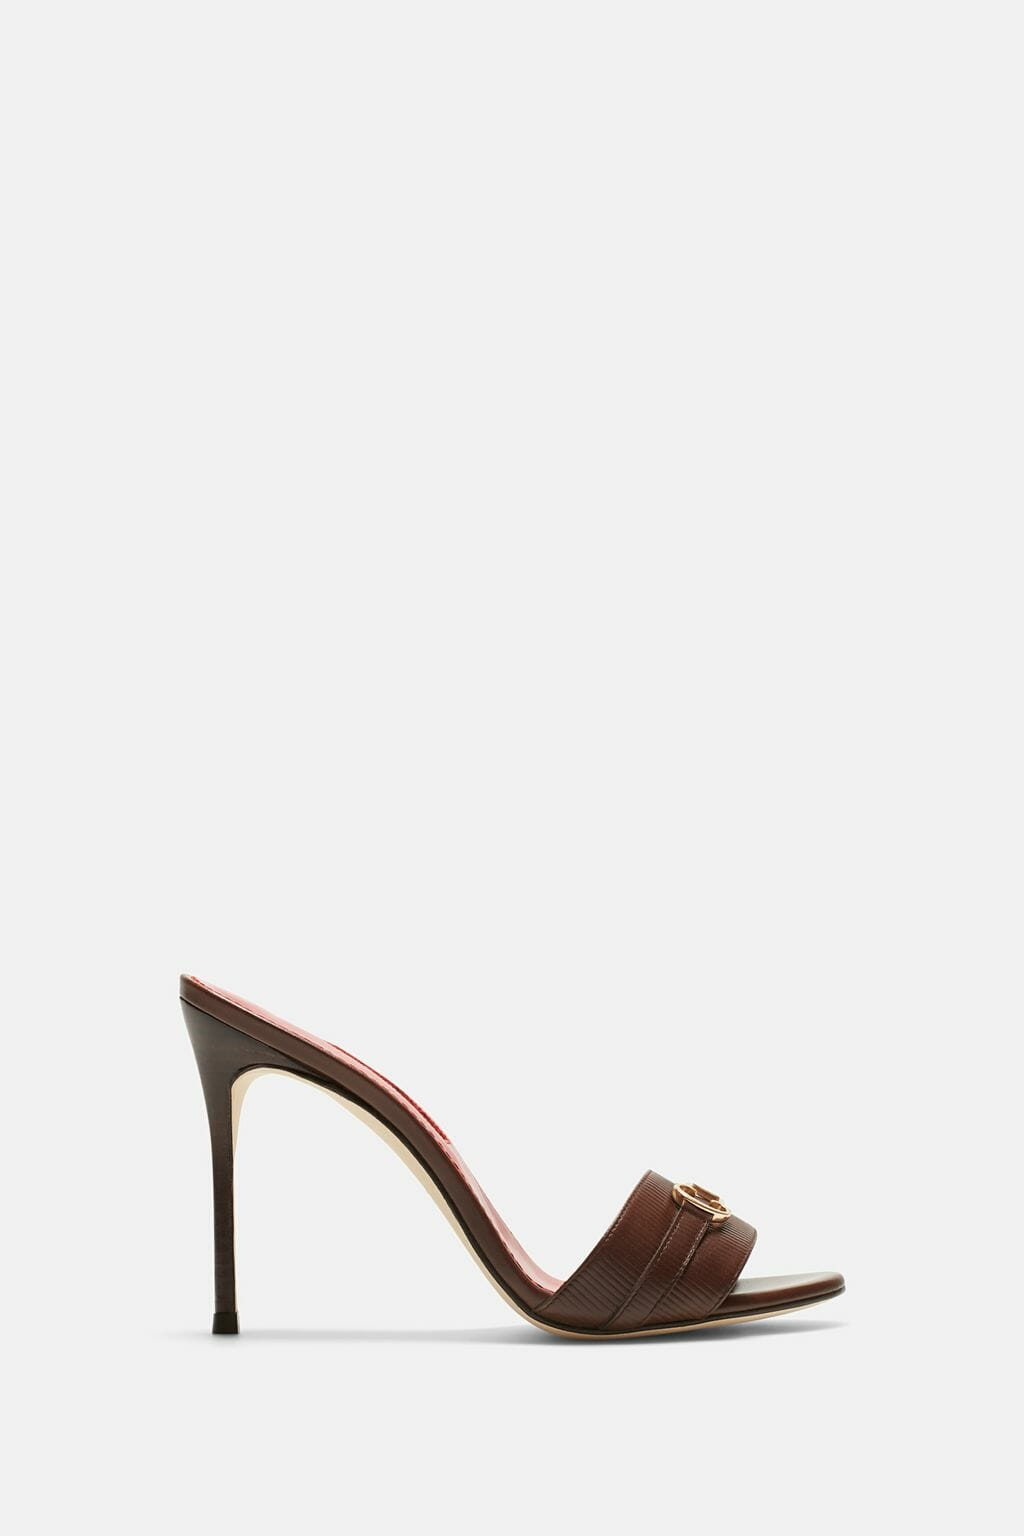 CH-Carolina-herrera-shoes-collection-Spring-Summer-2018-shoe-39